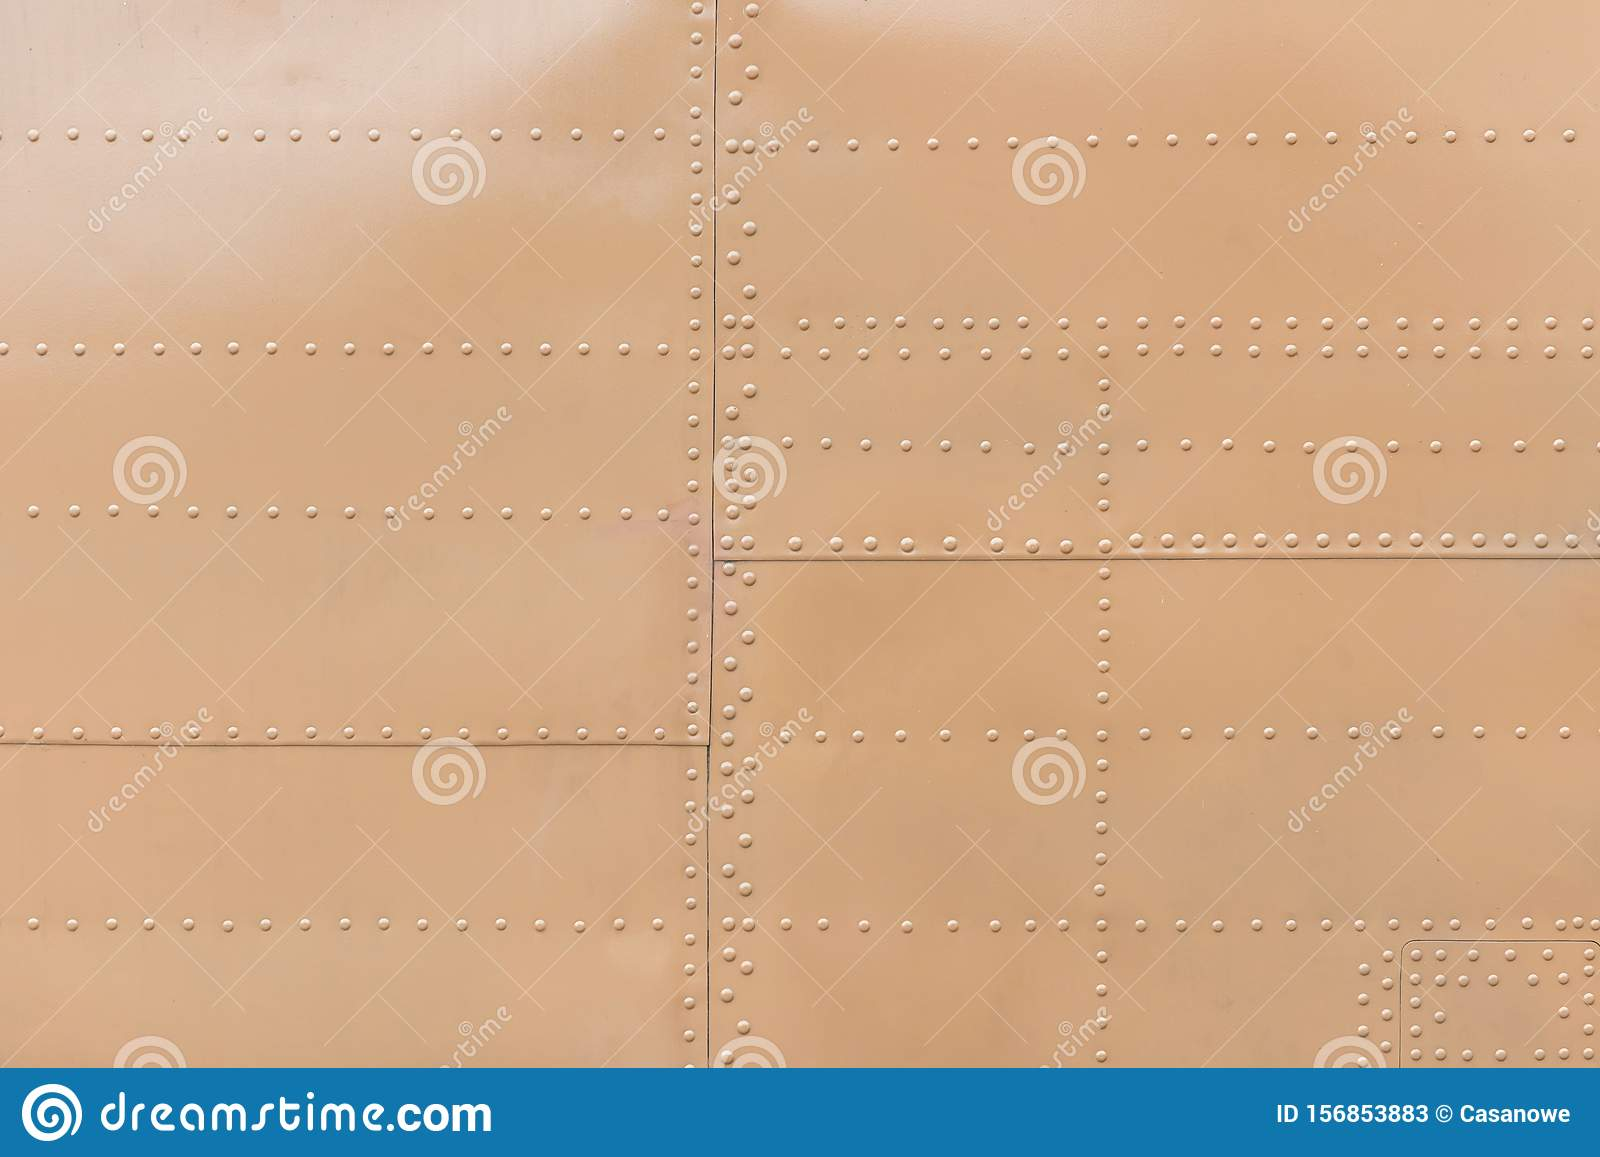 Metal aluminum surface of the aircraft fuselage texture